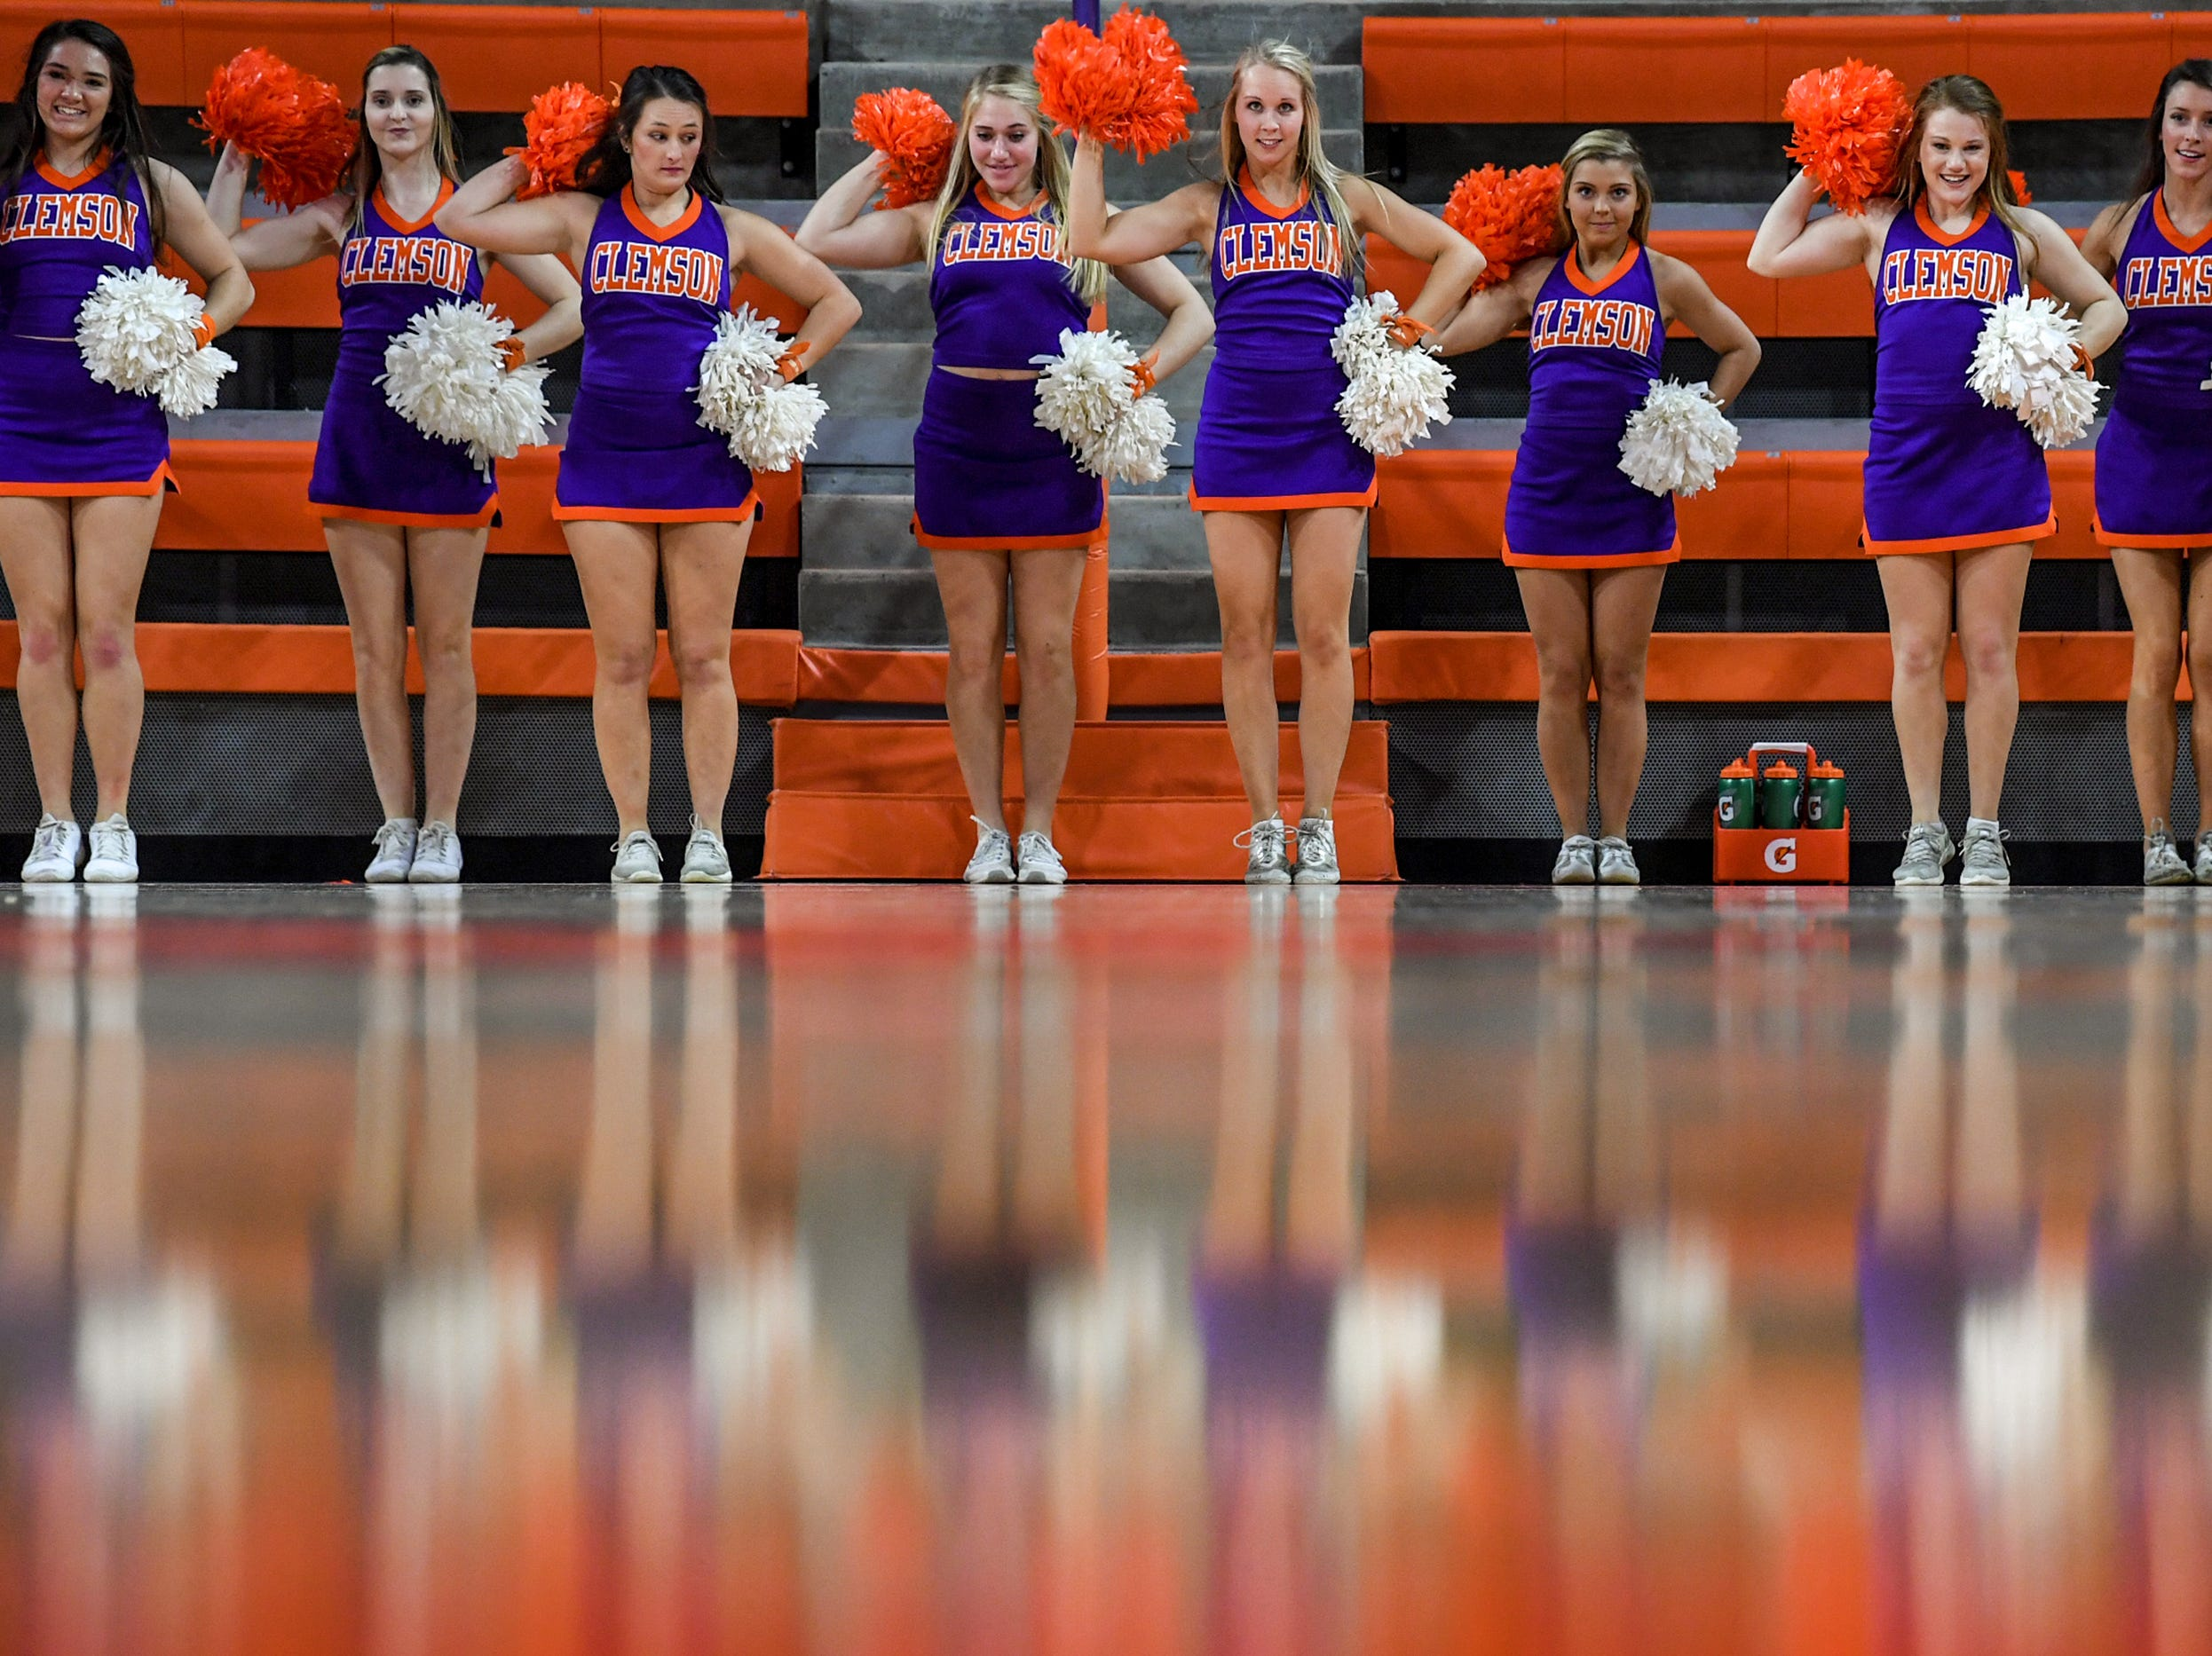 Clemson cheerleaders during the fourth quarter at Littlejohn Coliseum in Clemson Thursday, January 17, 2019.